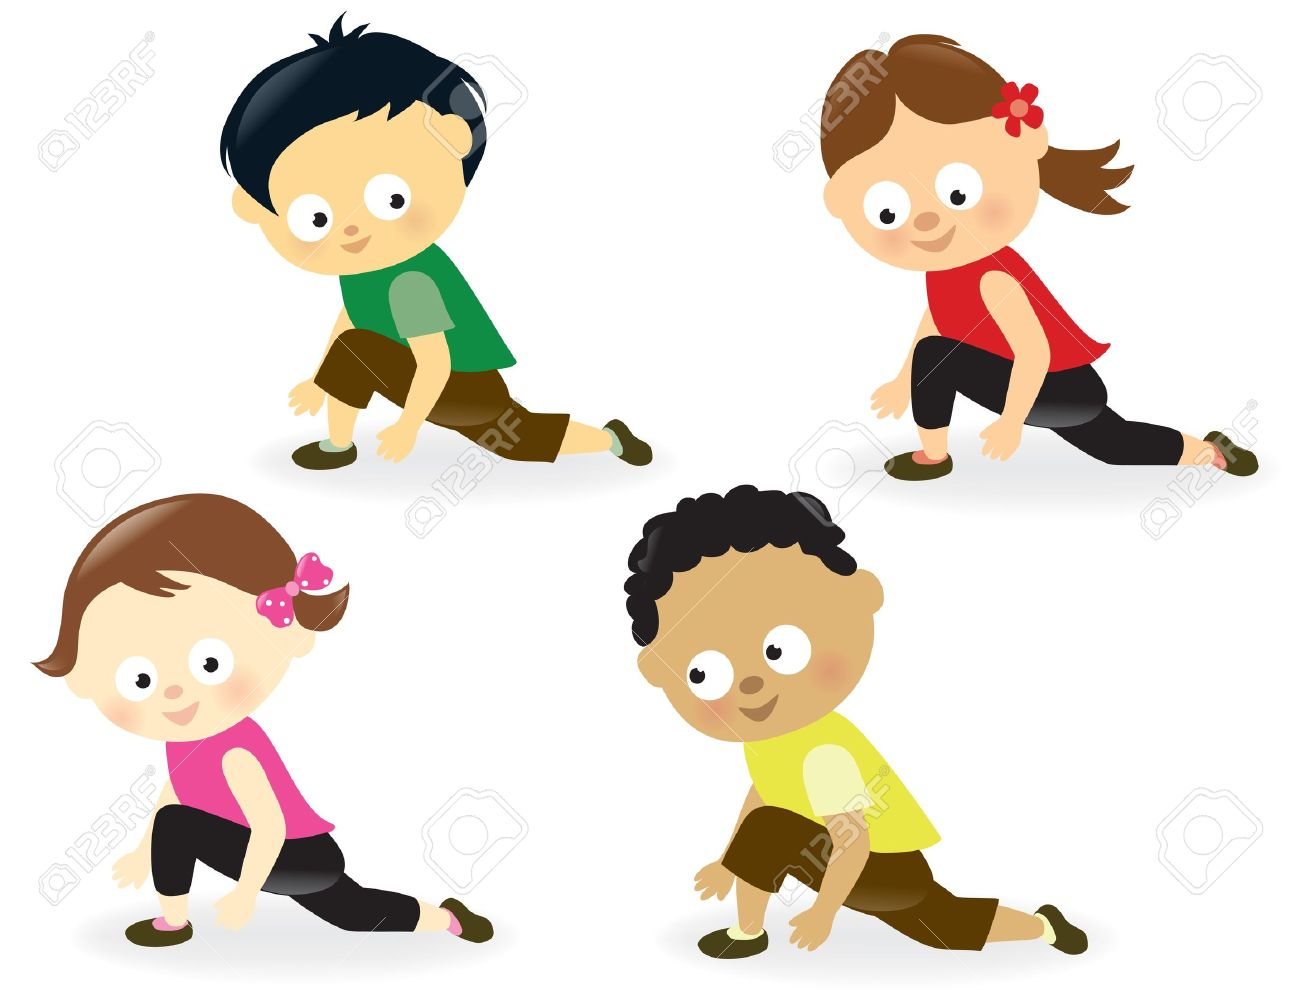 Workout kids clipart picture transparent Kids Exercise Clipart | Free download best Kids Exercise Clipart on ... picture transparent